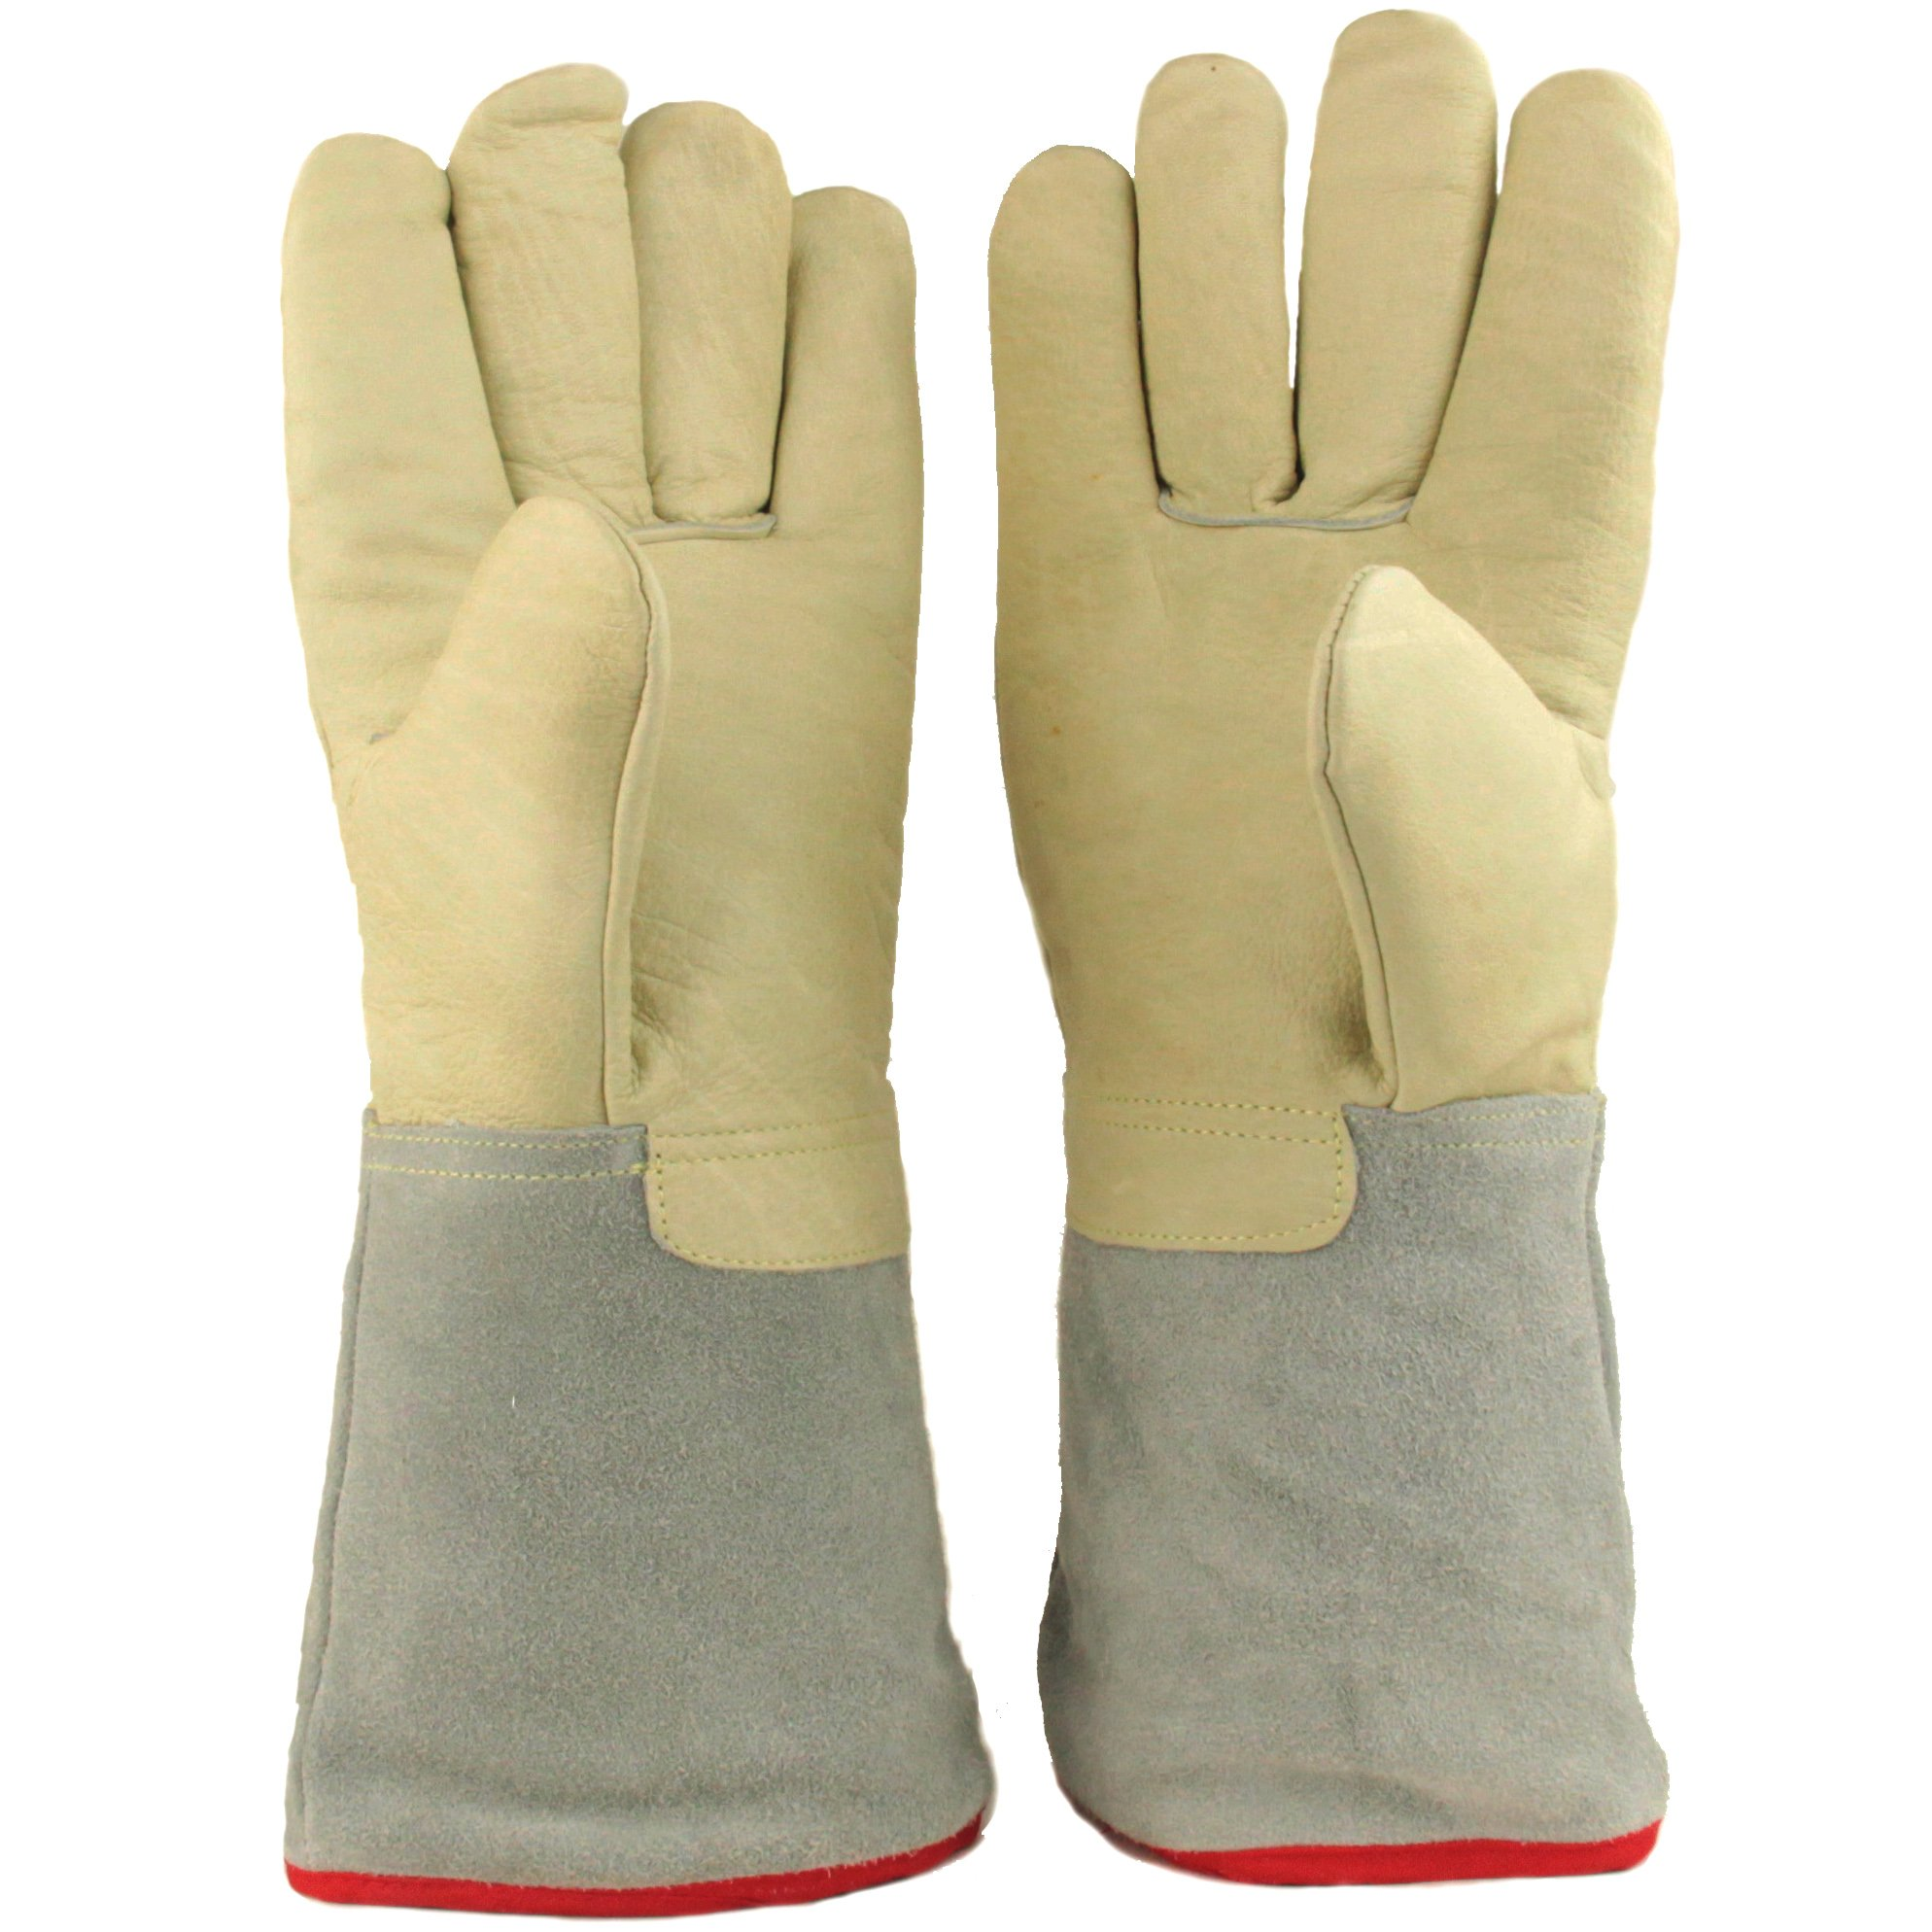 13.8''/35cm Long Cryogenic Gloves LN2 Liquid Nitrogen Protective Gloves from U.S. SOLID by U.S. Solid